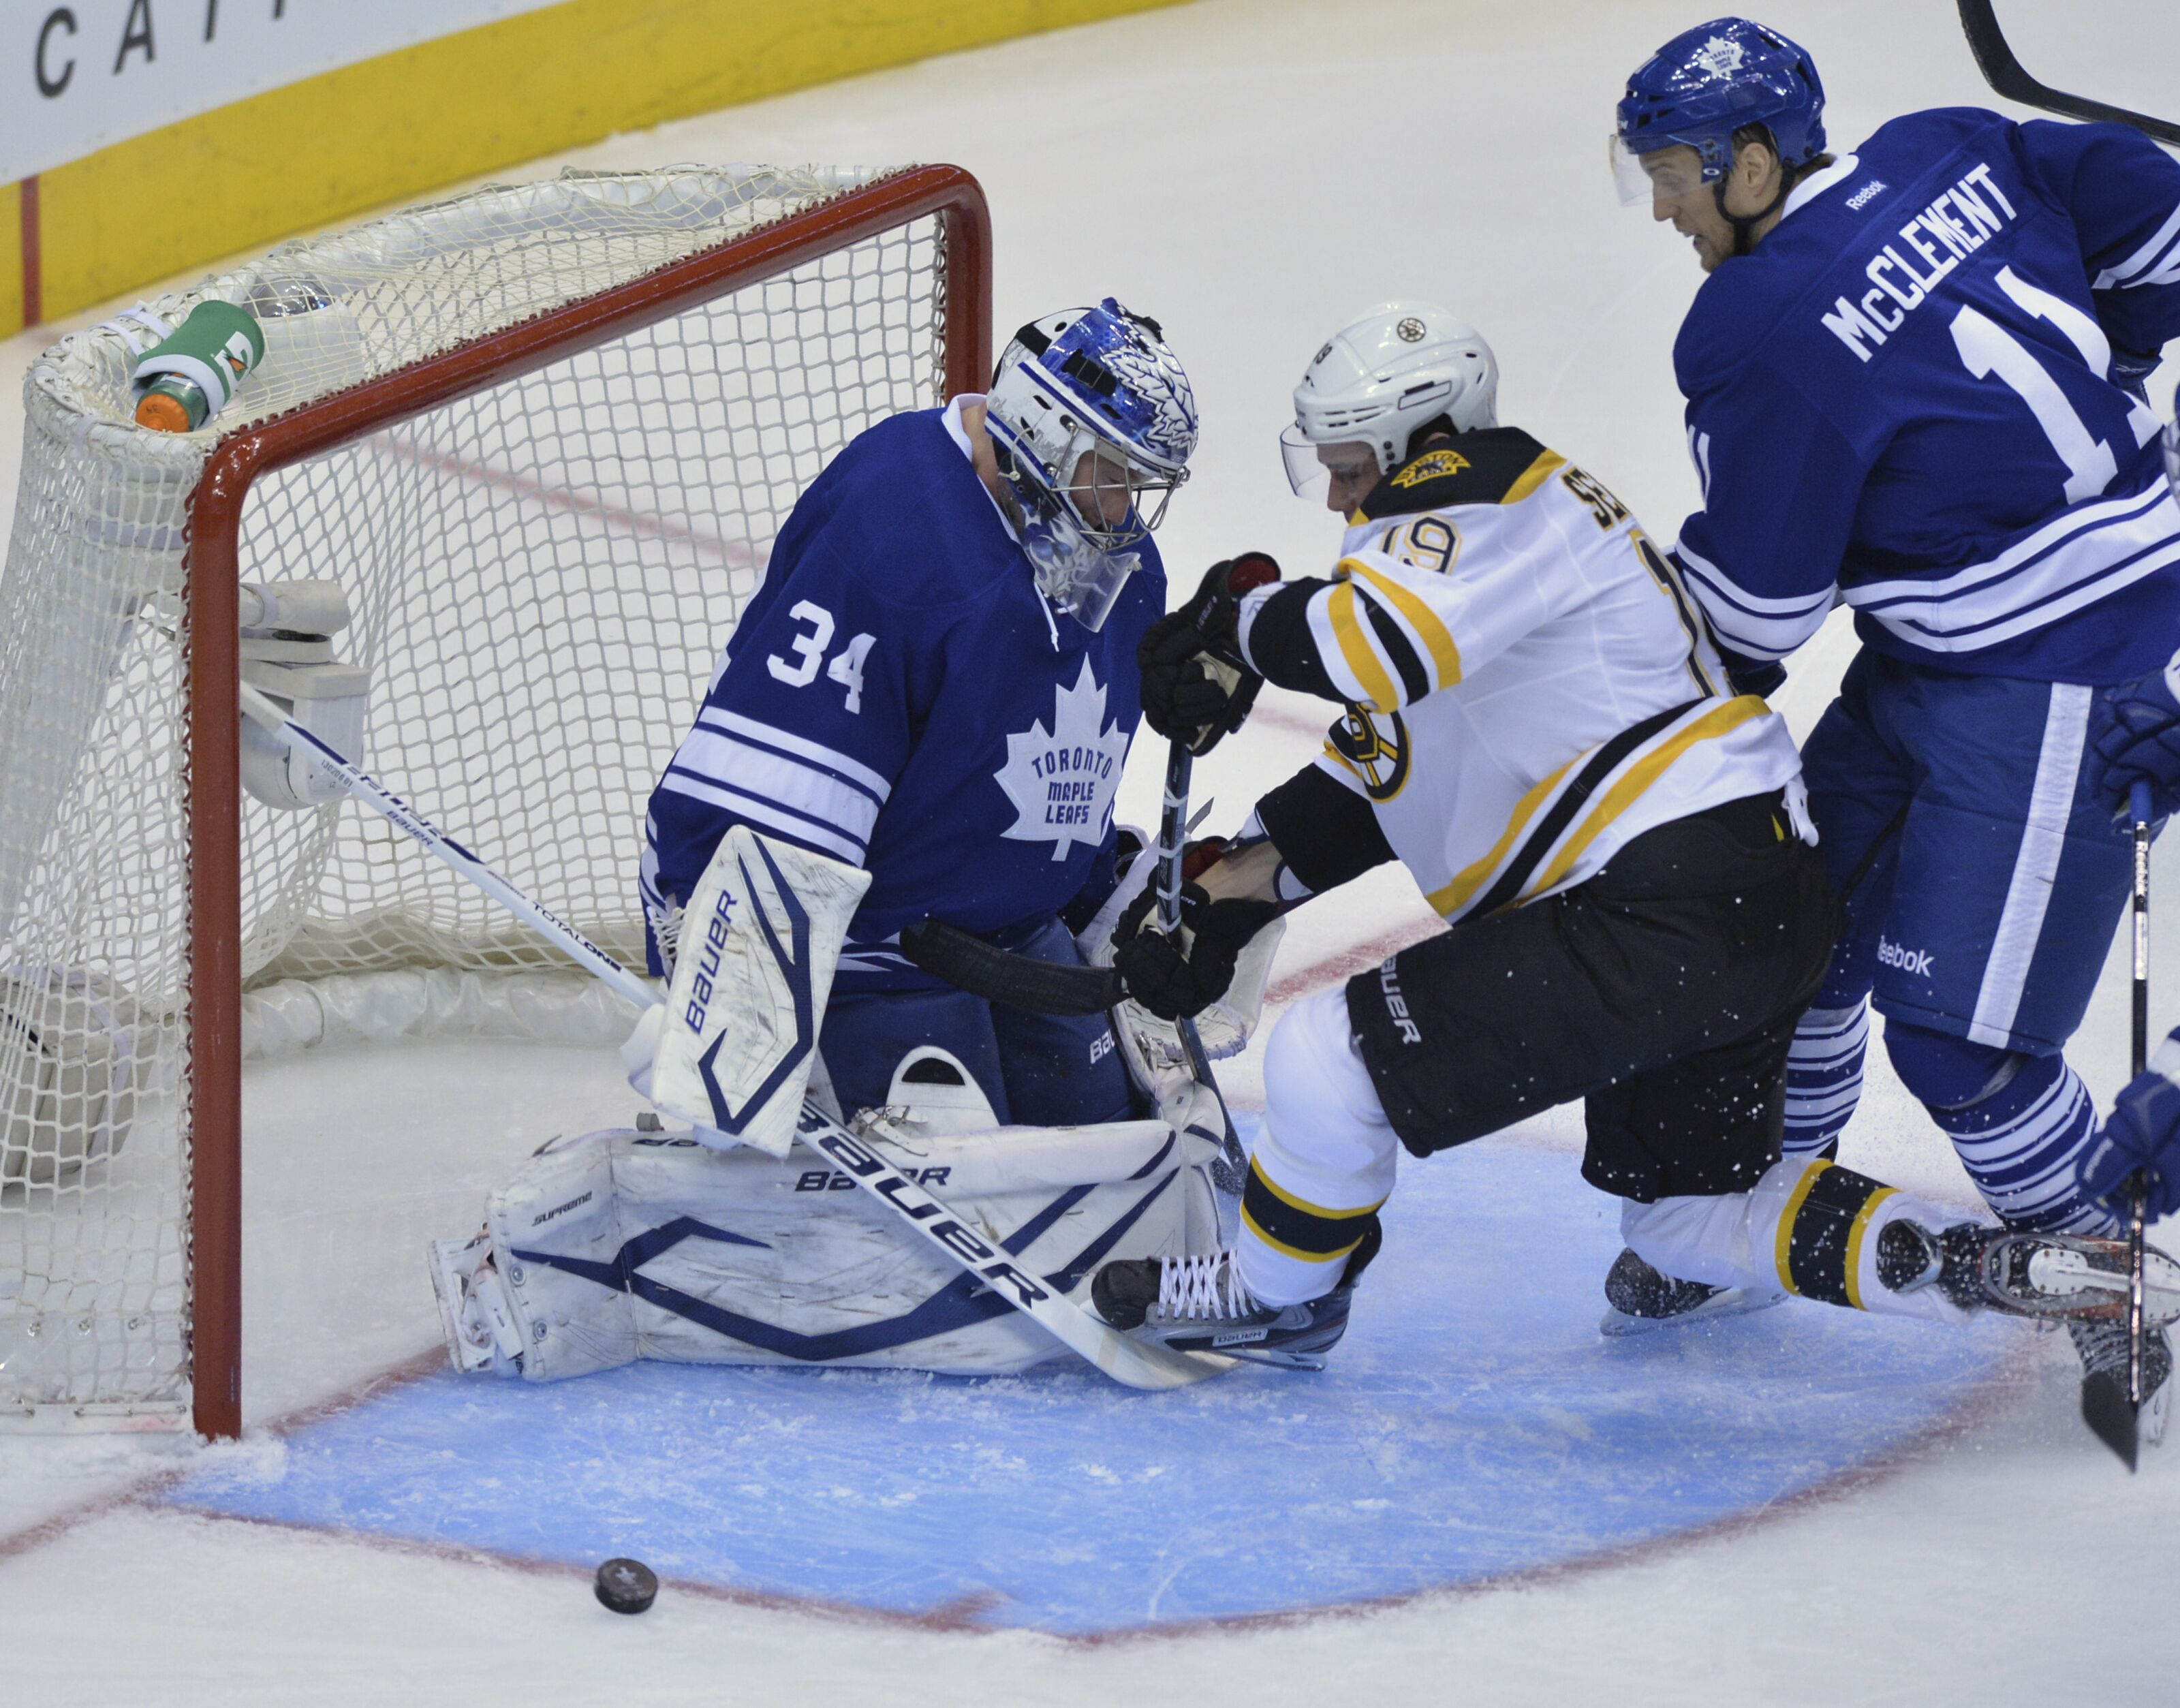 168323095-bostons-tyler-seguin-attempts-to-get-the-puck-past-leaf-netminder-james-reimer.jpg